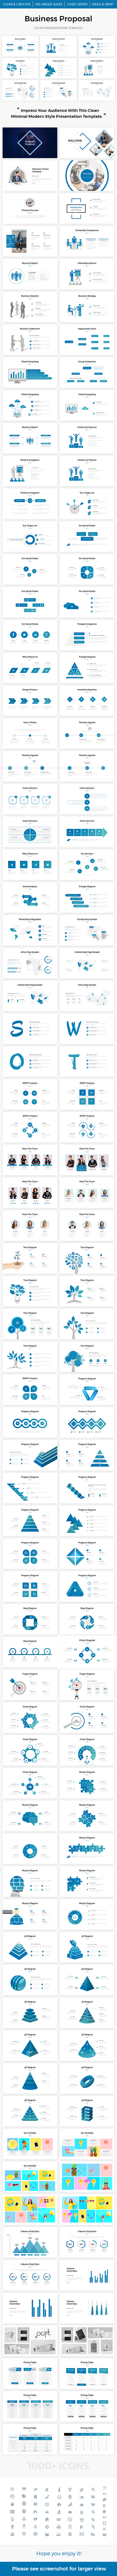 GraphicRiver Business Proposal Keynote Presentation Template 20935724